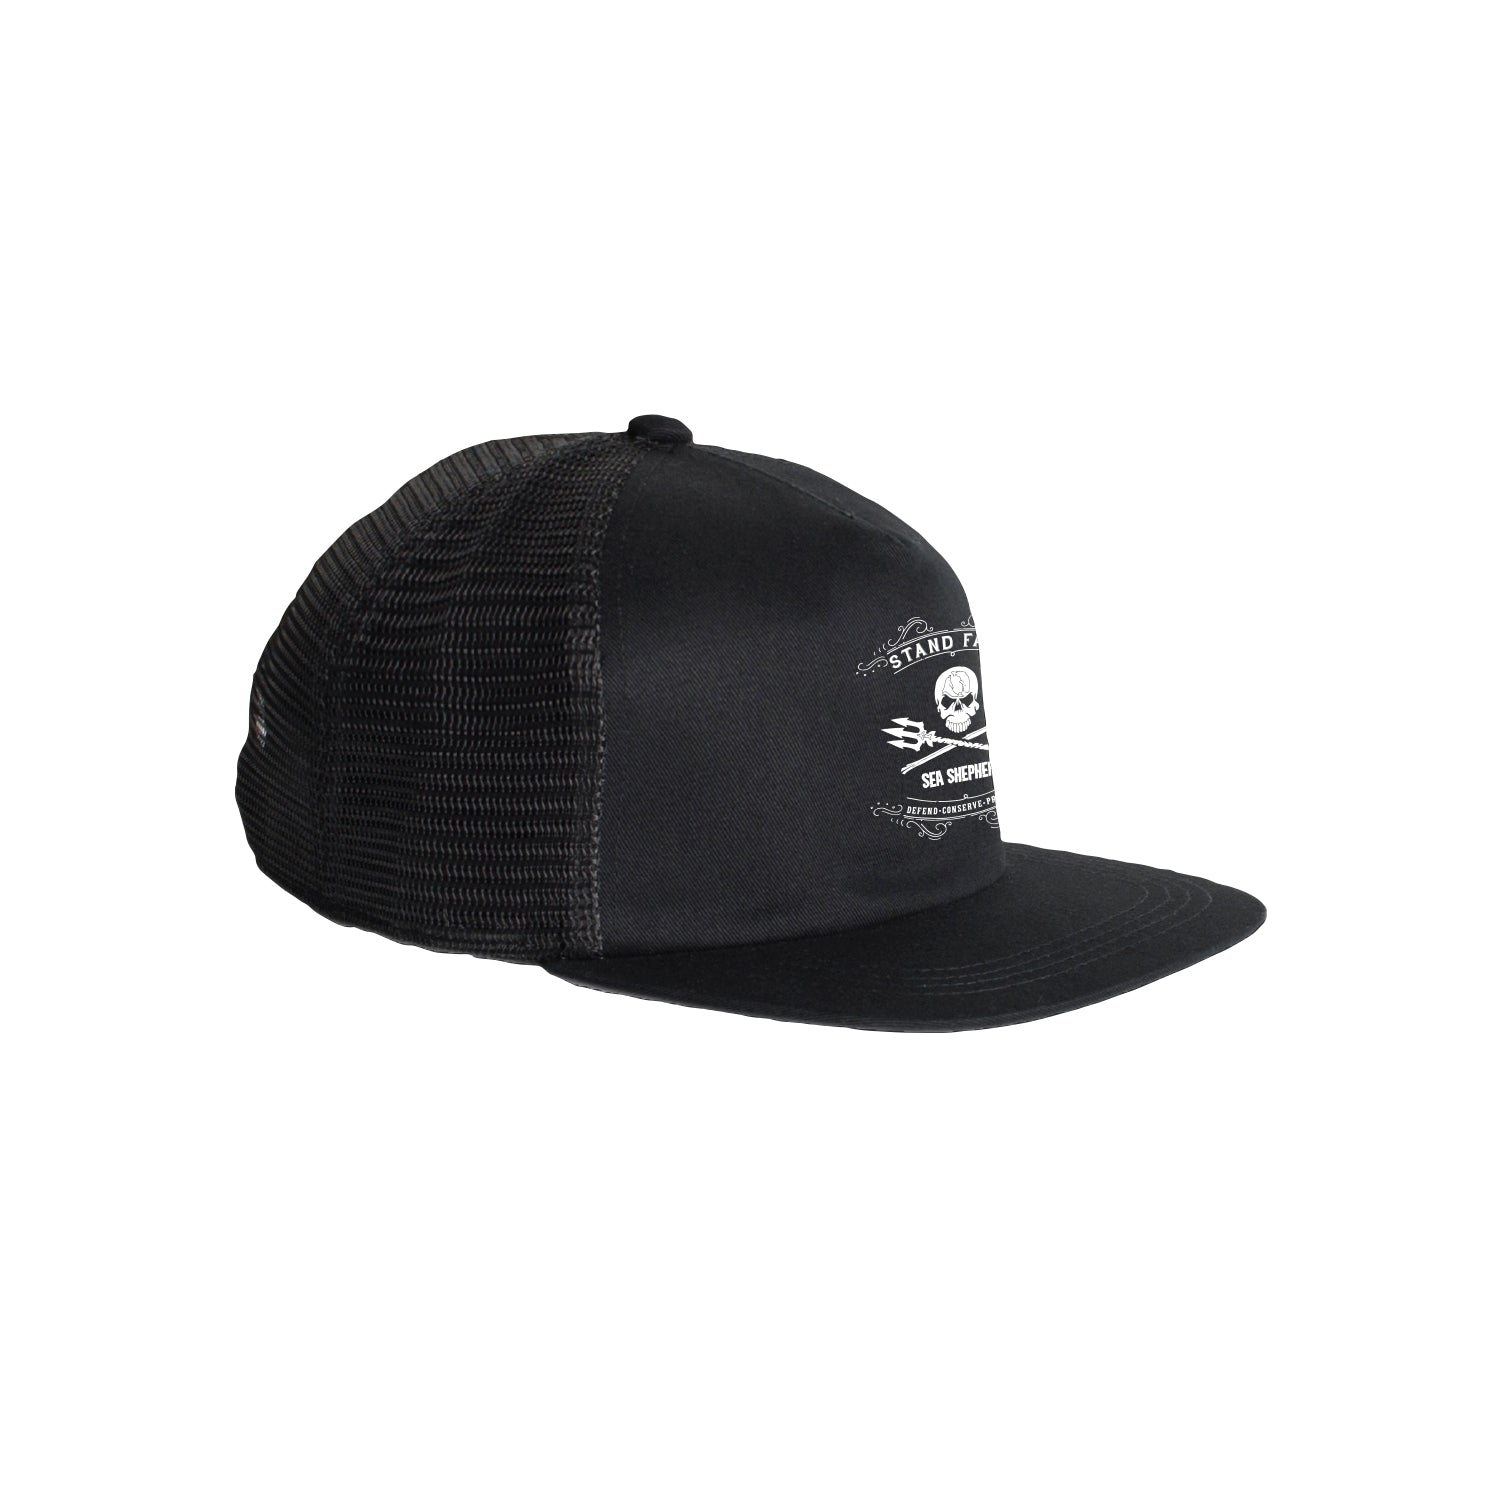 Sea Shepherd Stand Fast - Grand Master - Black Organic Cotton / Recycled Poly Trucker Cap